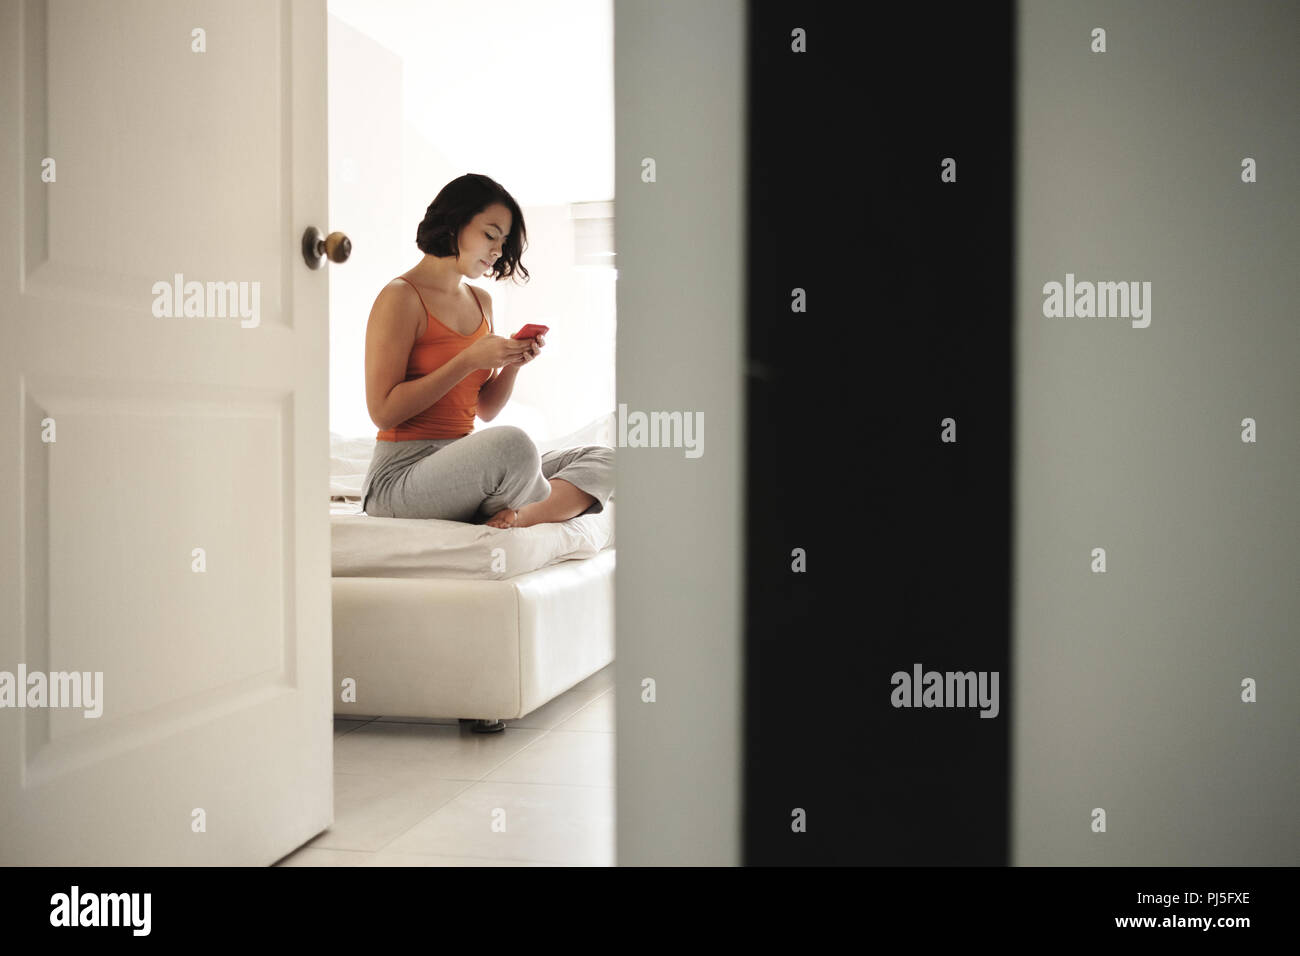 Hispanic woman sitting in bed at home with smart phone. Girl addicted to social media, checking her account on mobile phone in bedroom at morning. - Stock Image